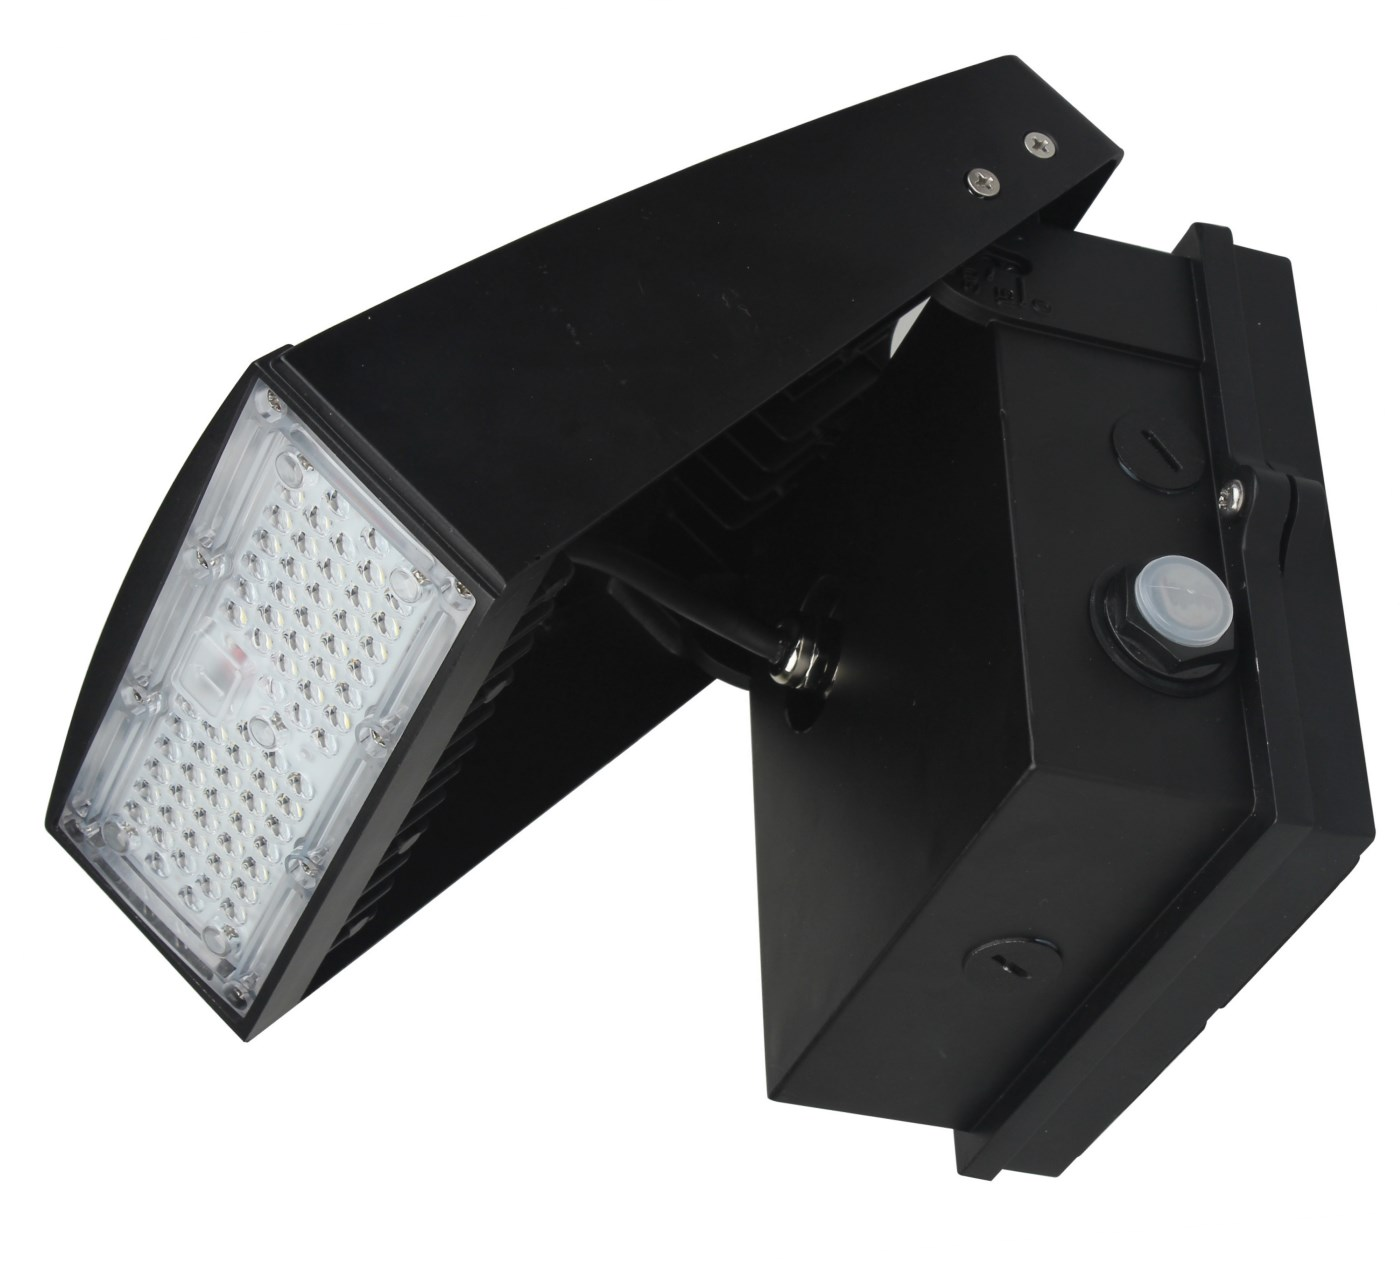 Led Photocell Wall Light : 55 Watt LED Wall Light - Adjustable -PHOTOCELL- 6,000 Lumens - 5000K